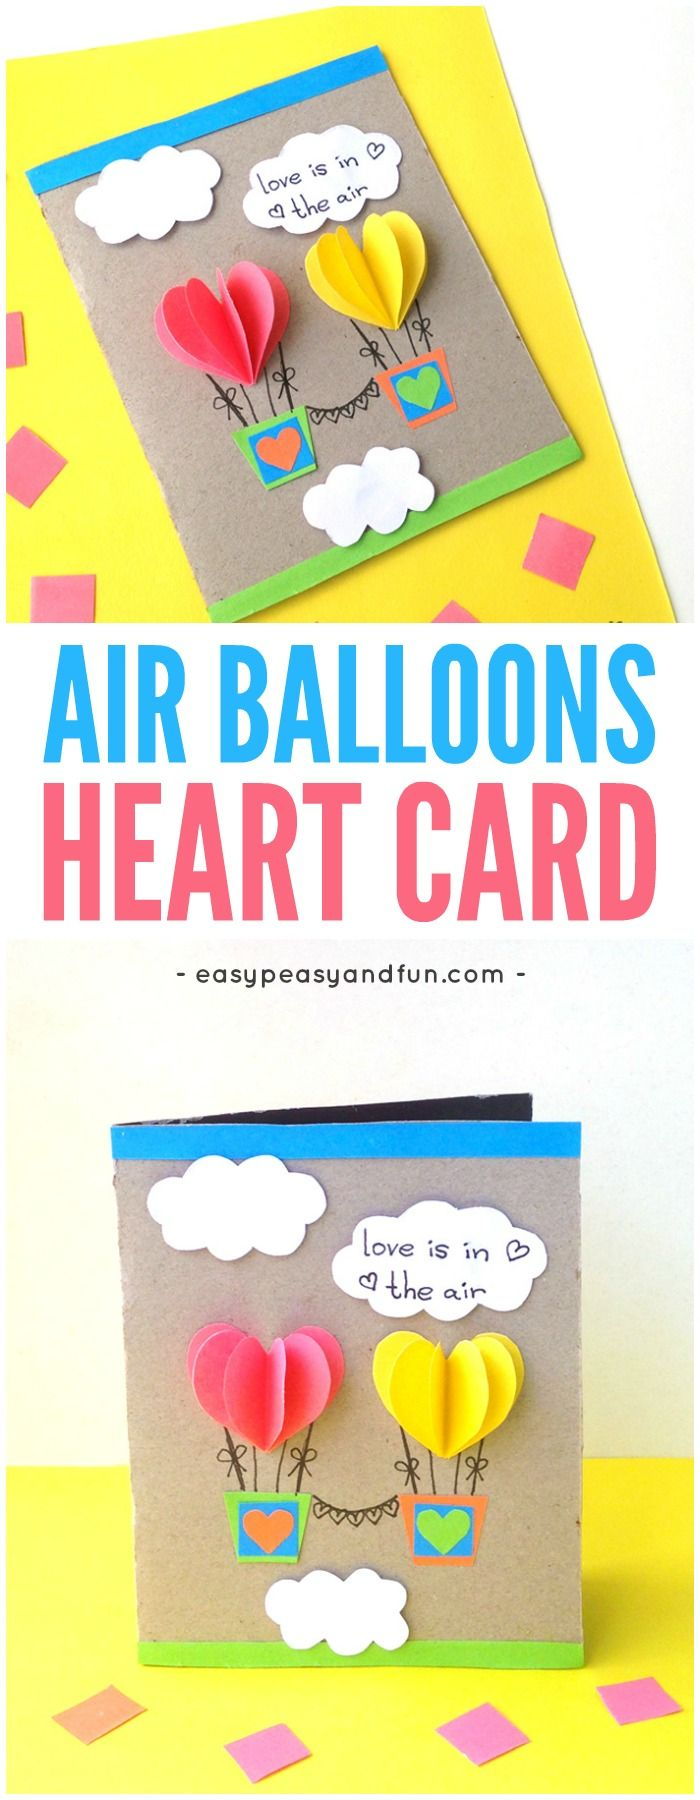 Heart Air Balloons Card Craft Idea for Kids to Make #Valentinesdaycrafts #craftsforkids #papercraftsforkids